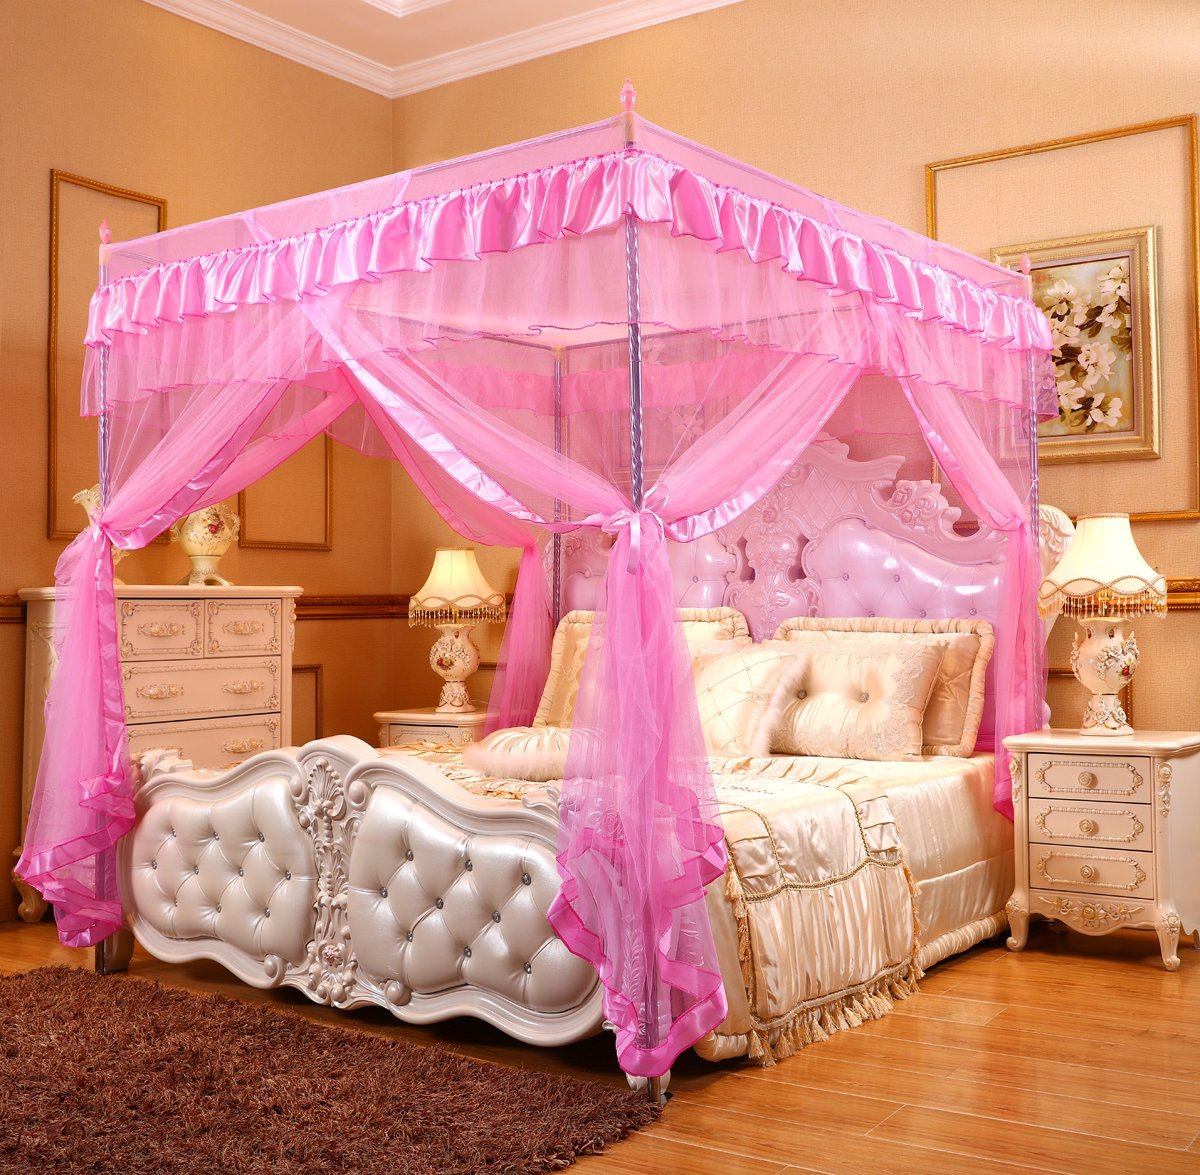 4post Bed Details About Pink Ruffled Four 4 Post Bed Canopy Netting Curtains Sheer Panel Corner Any Size